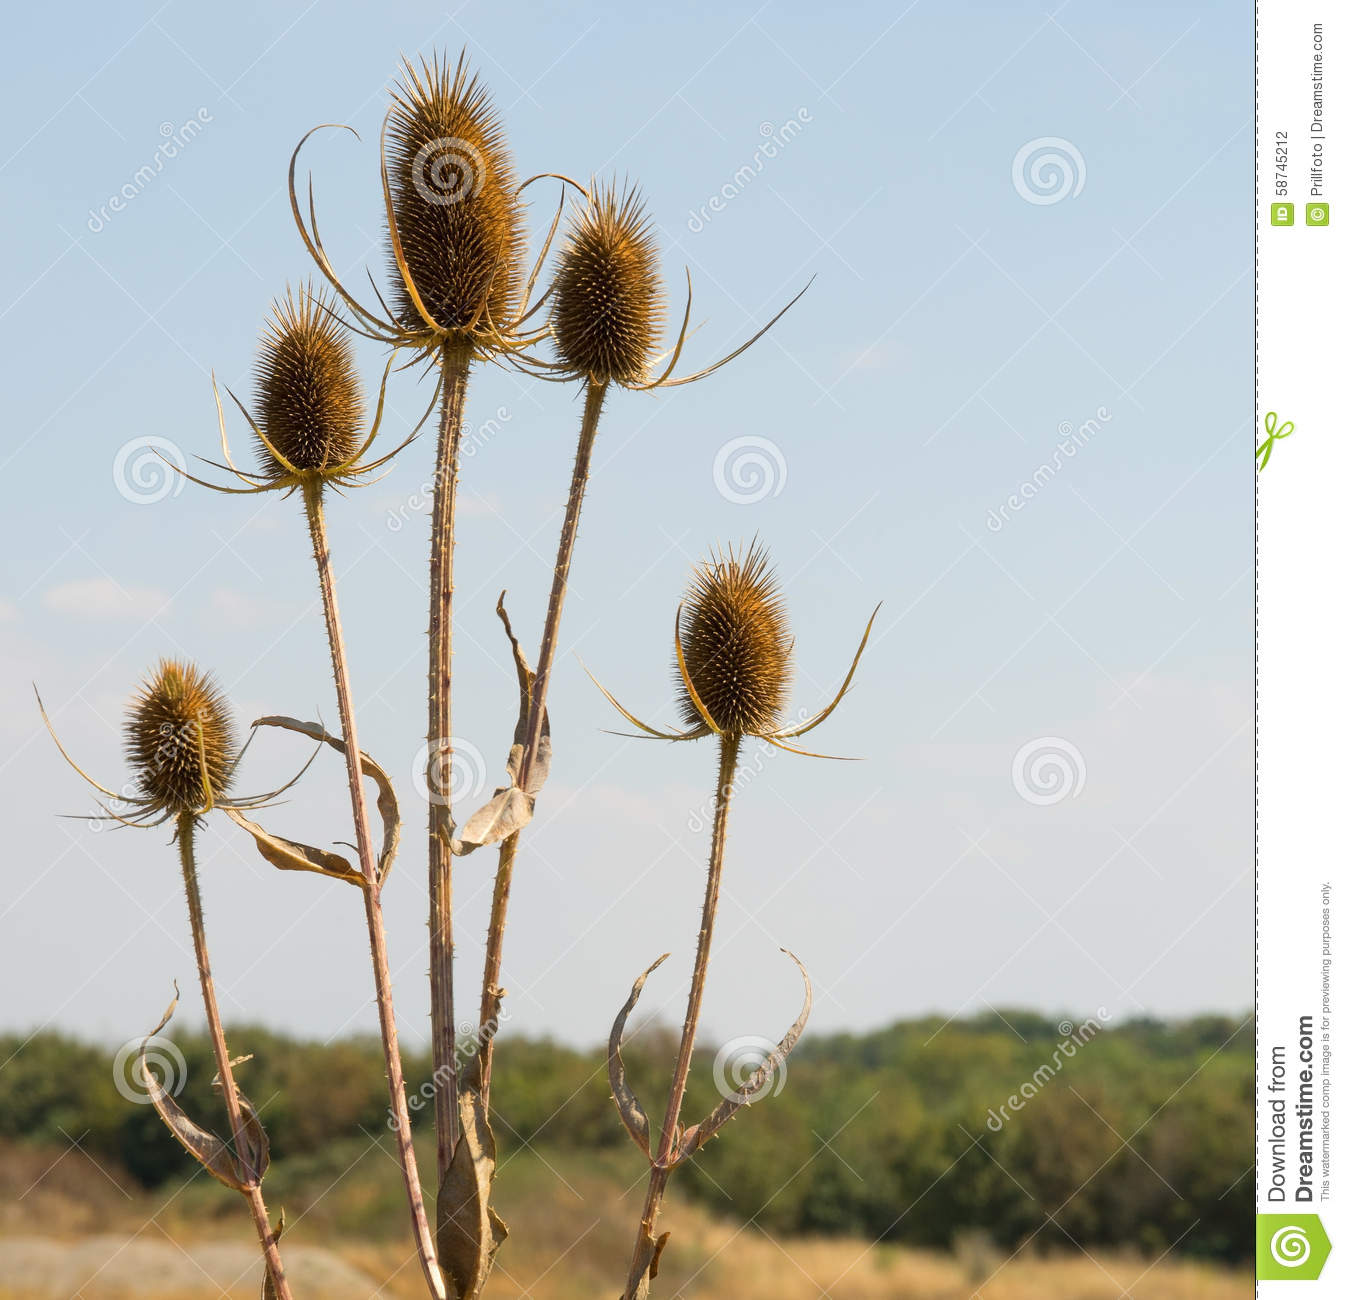 Dry Teasel Flowers Stock Photo.